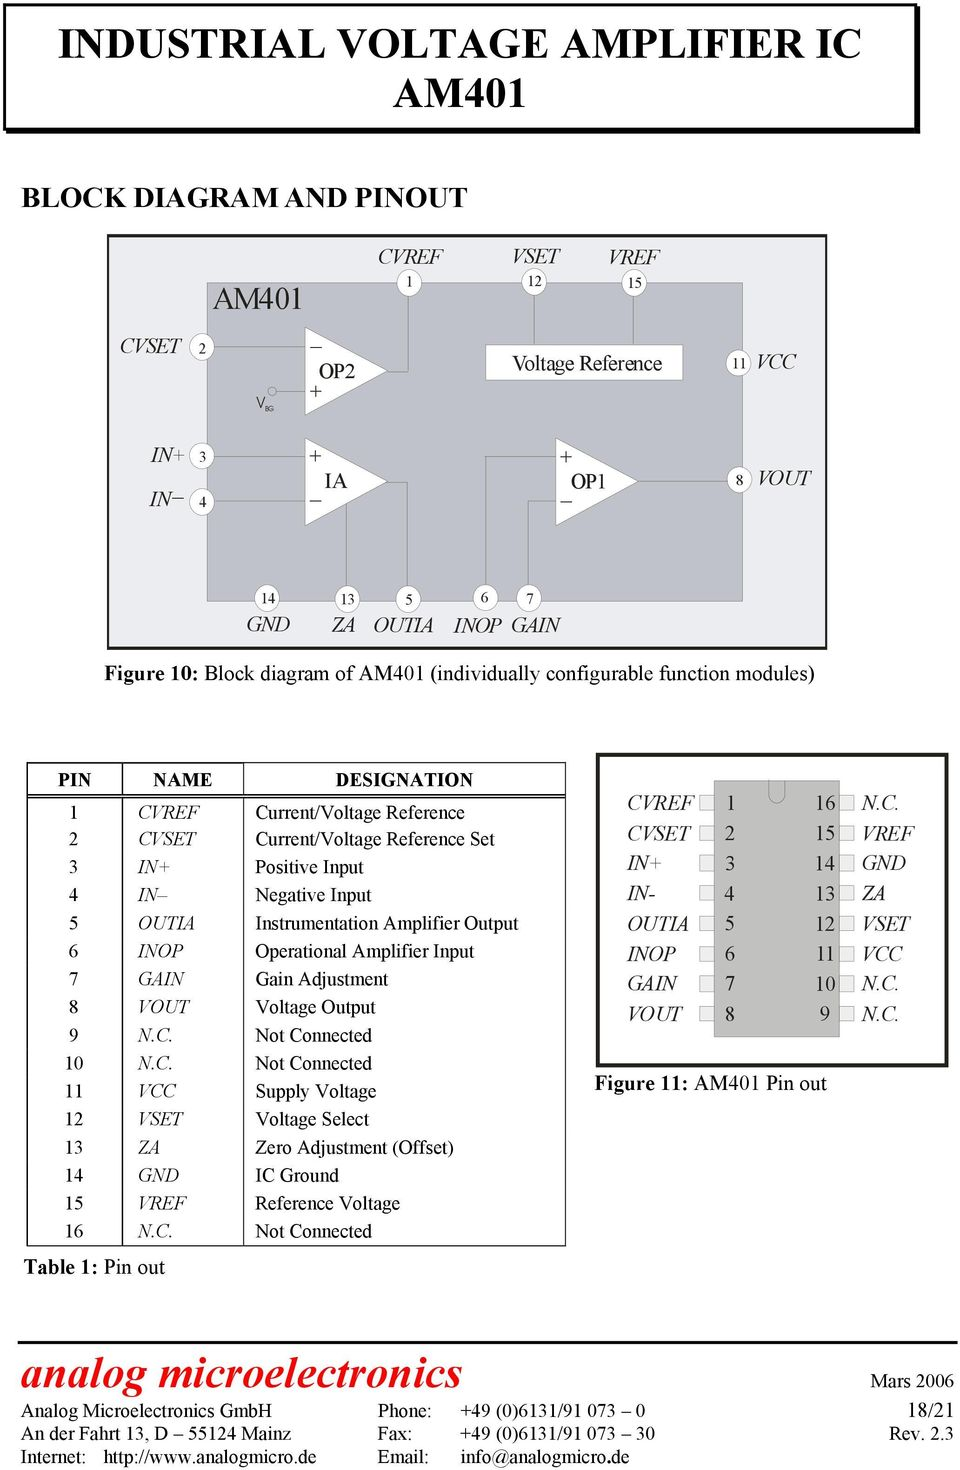 Industrial Voltage Amplifier Ic Am401 Principle Function Pdf Pinout Diagrams Together With High Power Audio Lifier Schematics Operational Input 7 Gain Adjustment 8 Vout Output 9 Nc